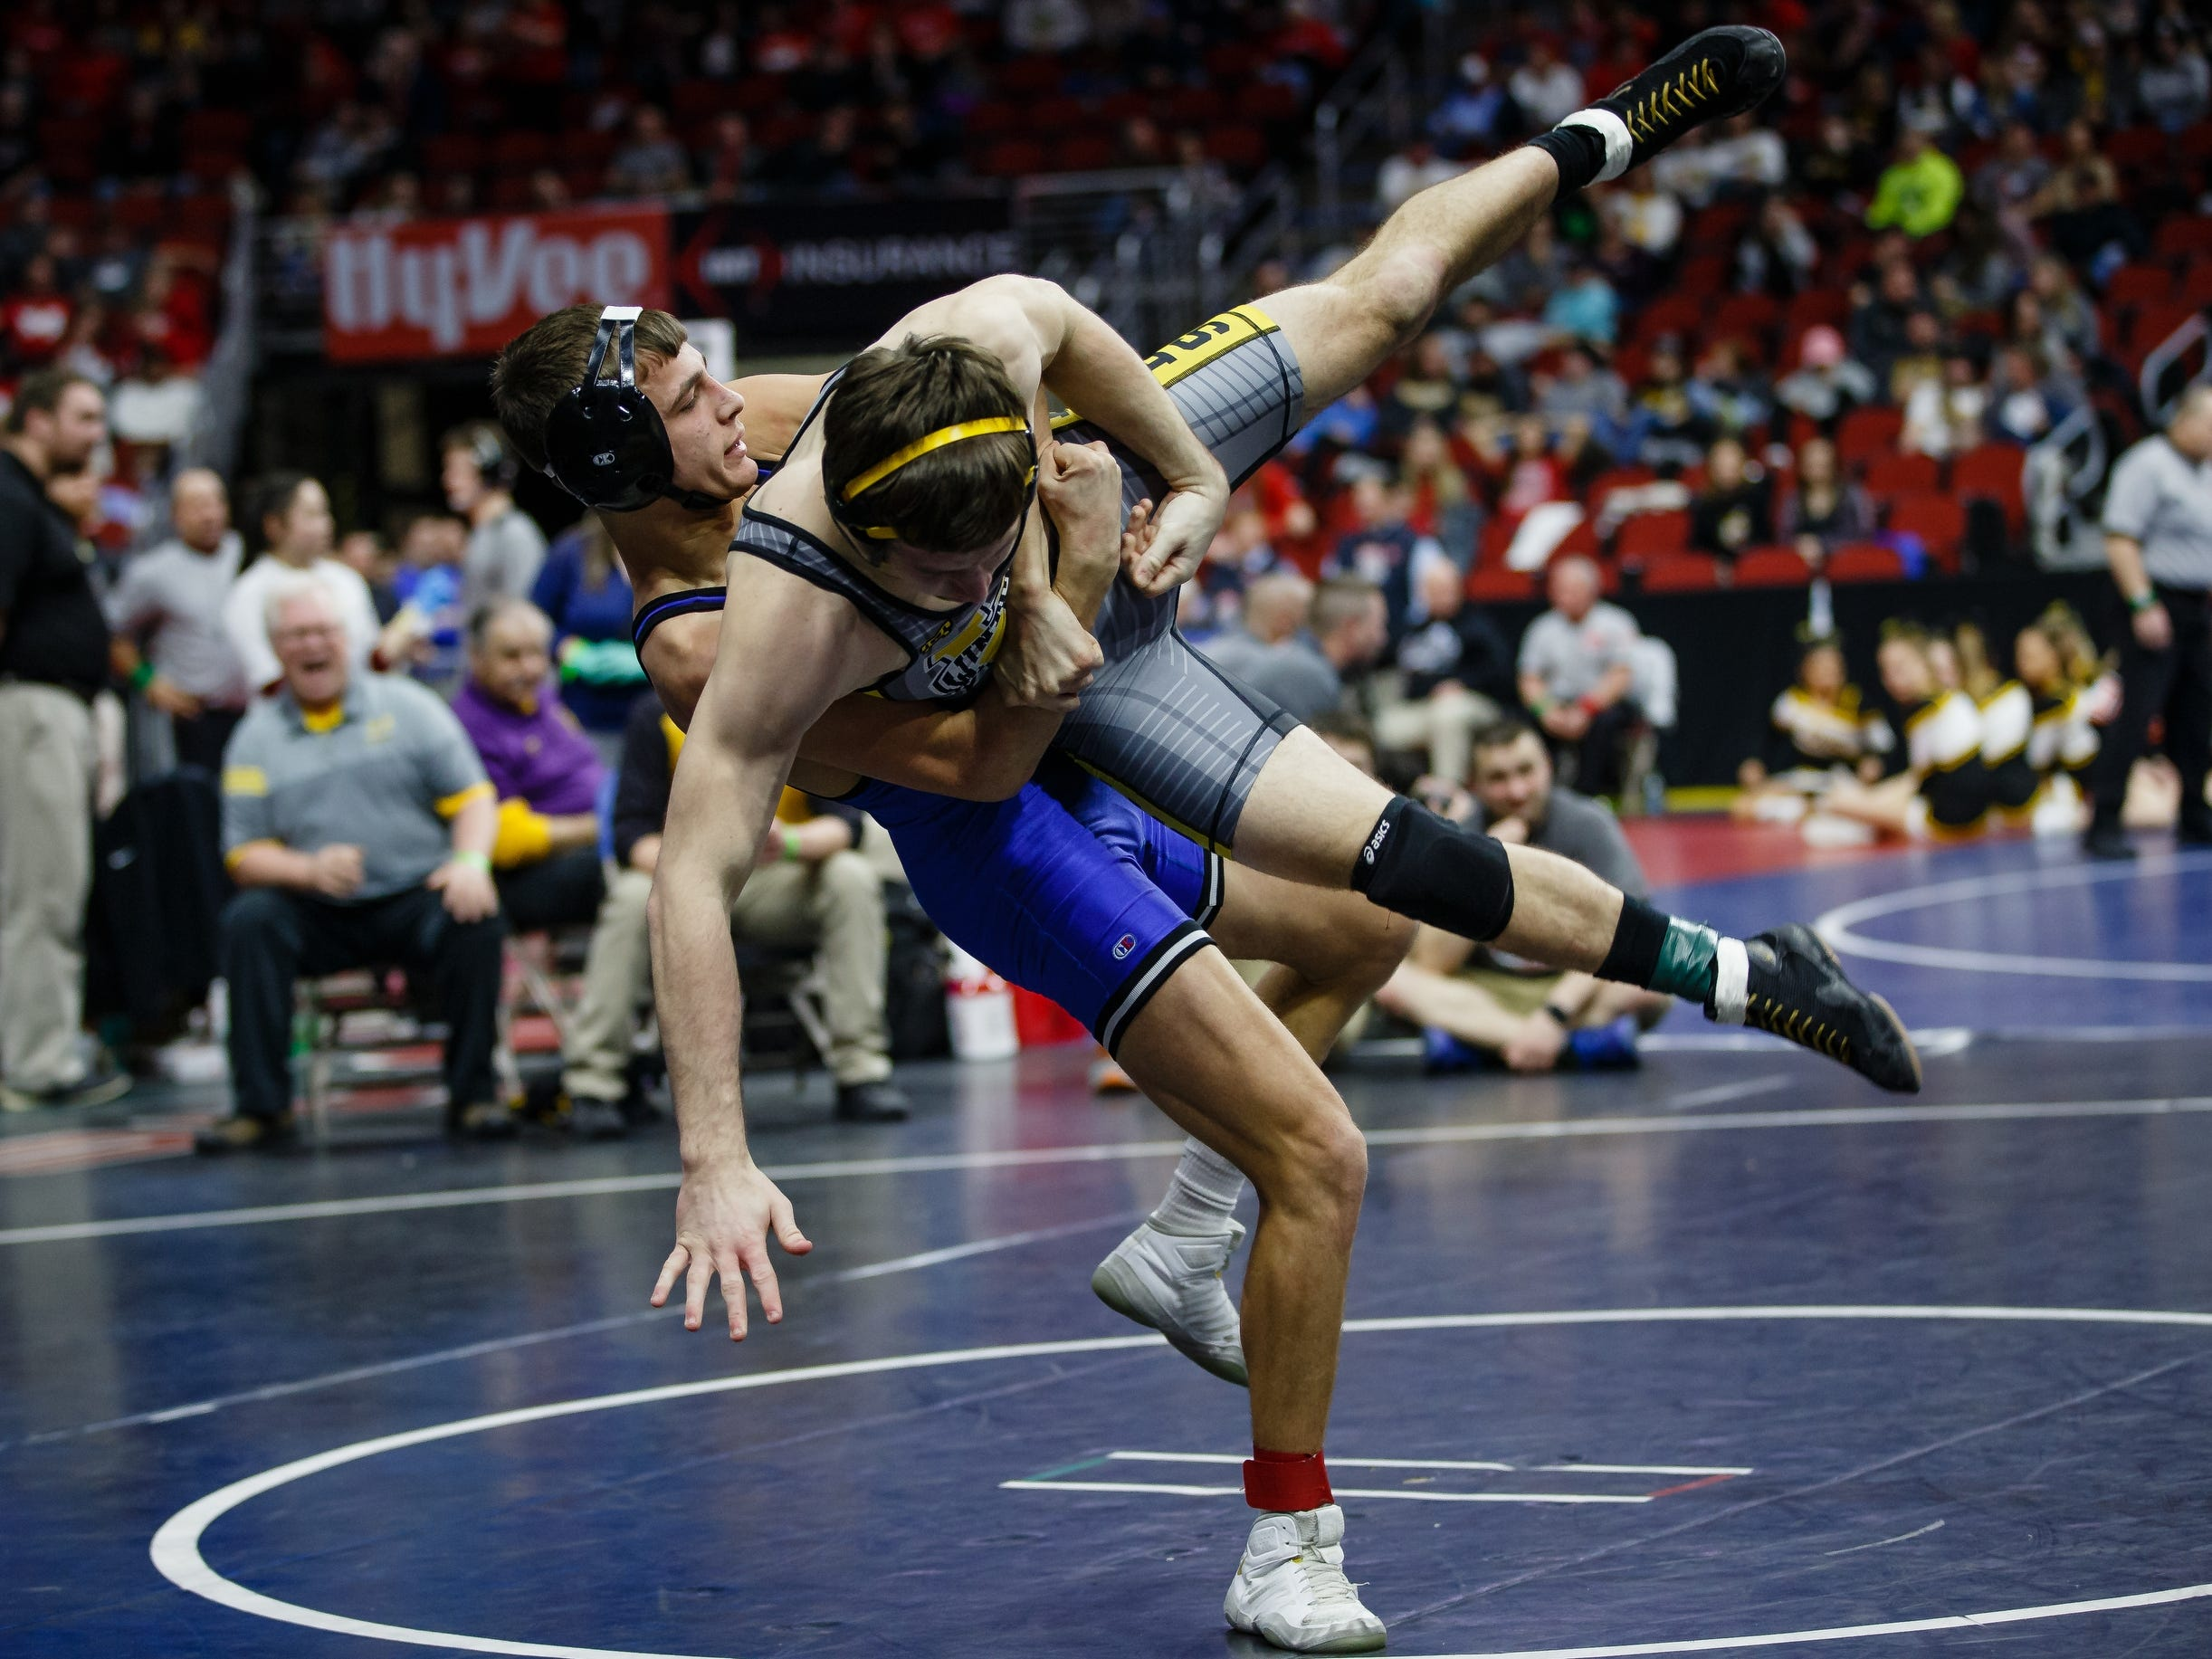 Jack West of Winterset wrestles Will Esmoil of West Liberty during their class 2A 145 pound state championship semi-final match on Friday, Feb. 15, 2019 in Des Moines. Esmoil moves on with a 5-0 decision.